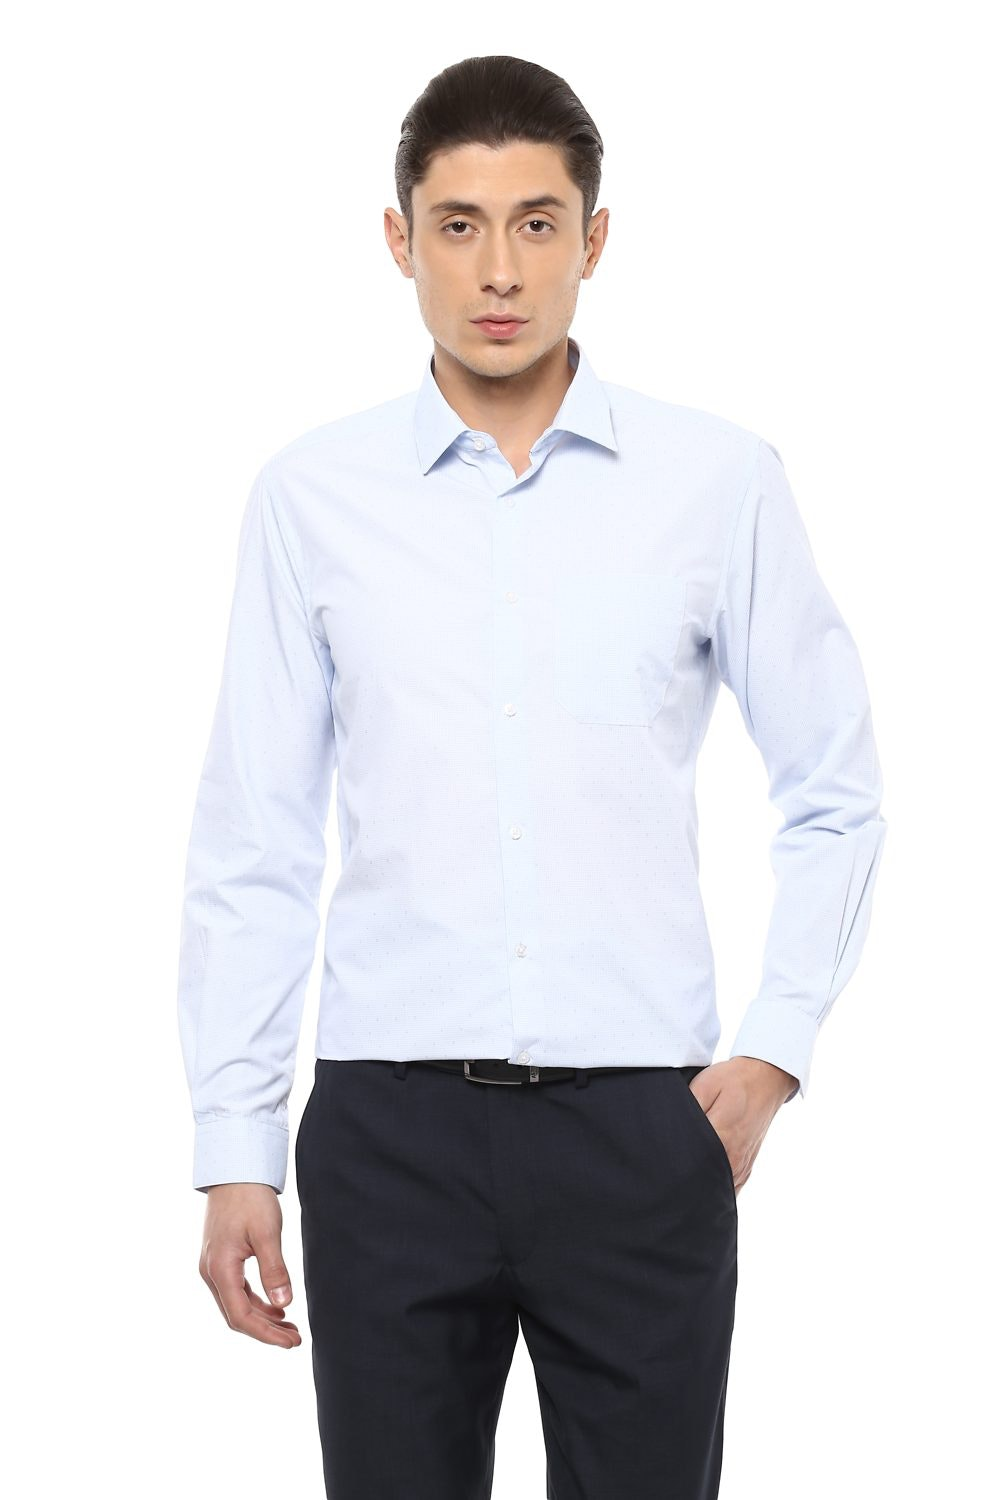 8658ddf39d Buy Peter England Men s Shirts-Peter England Shirts Online in India ...